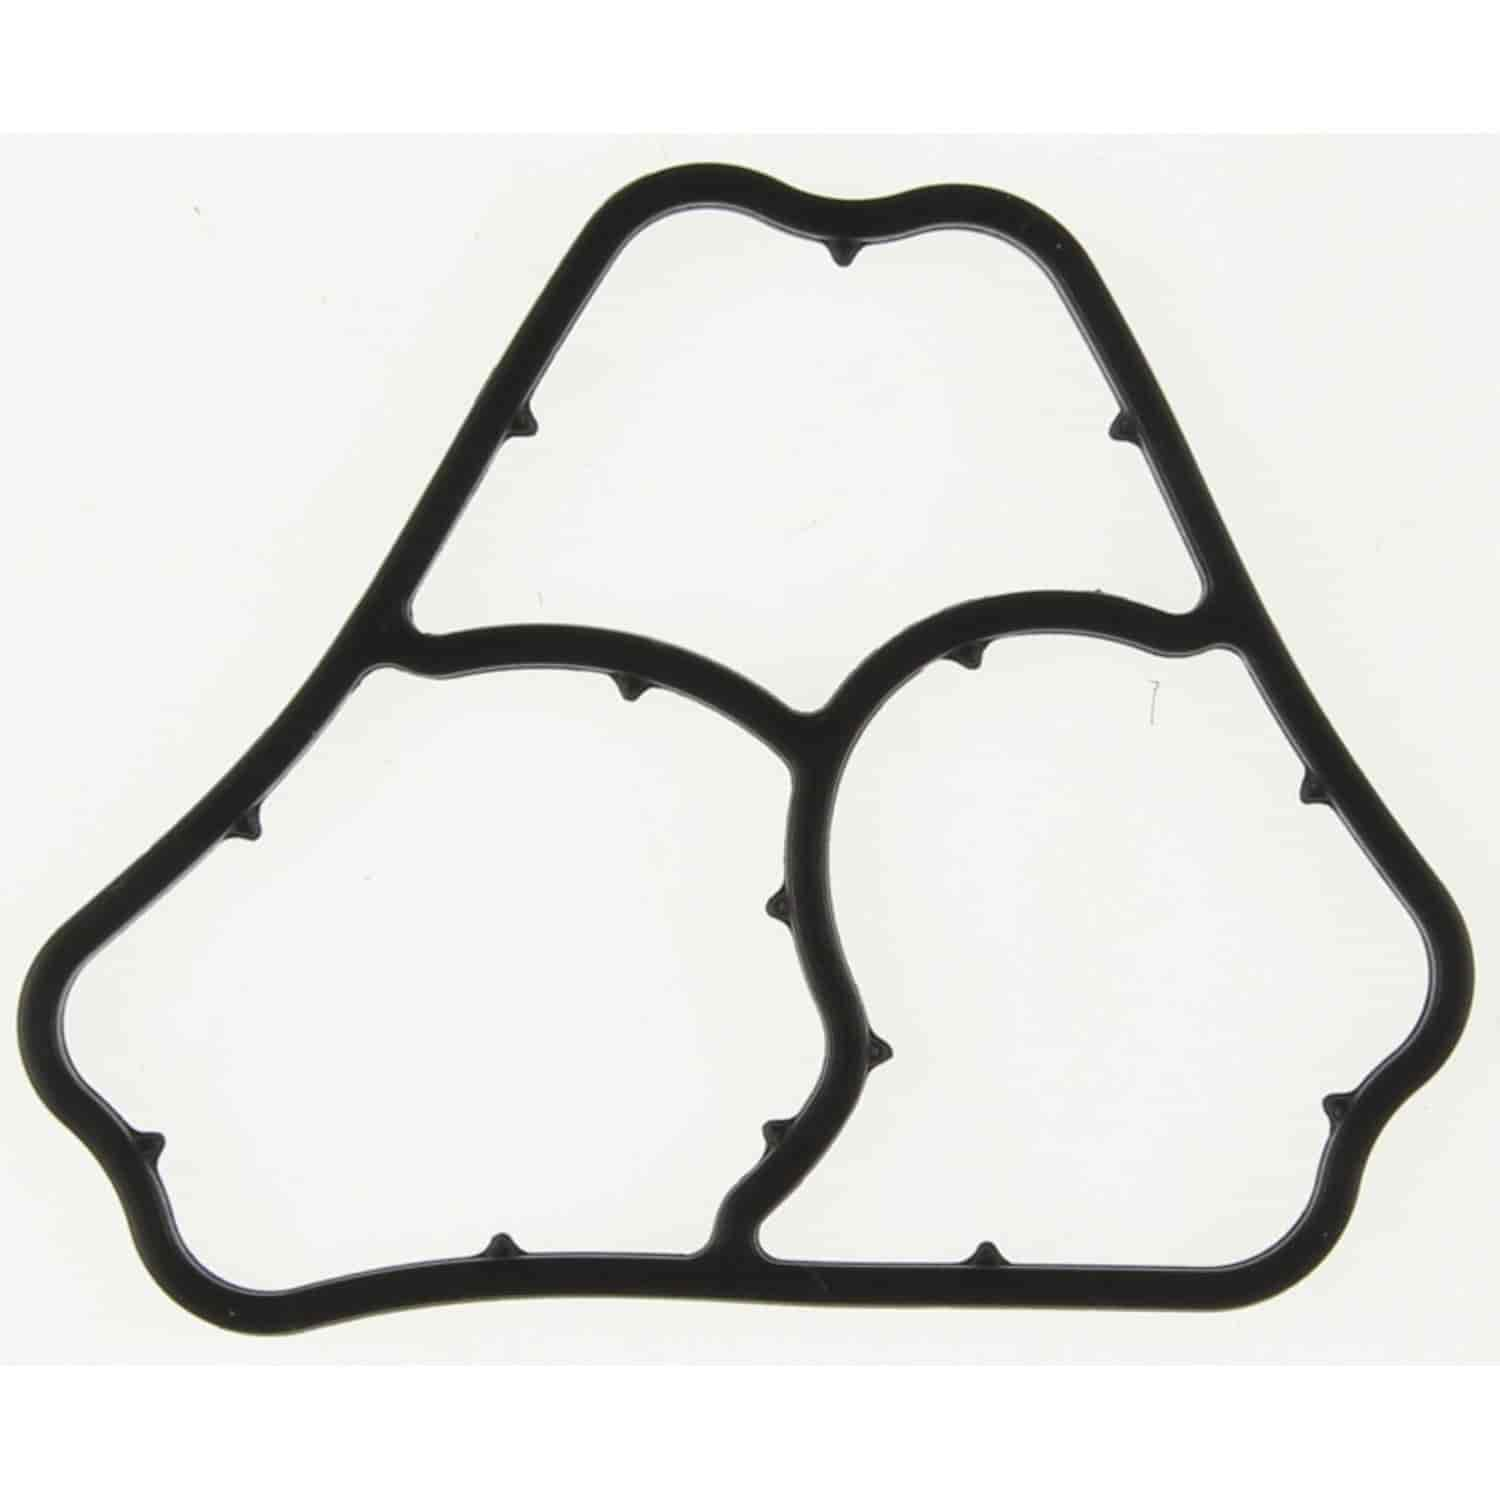 Clevite MAHLE B32623: Oil Filter Adapter Gasket MINI 1.6L